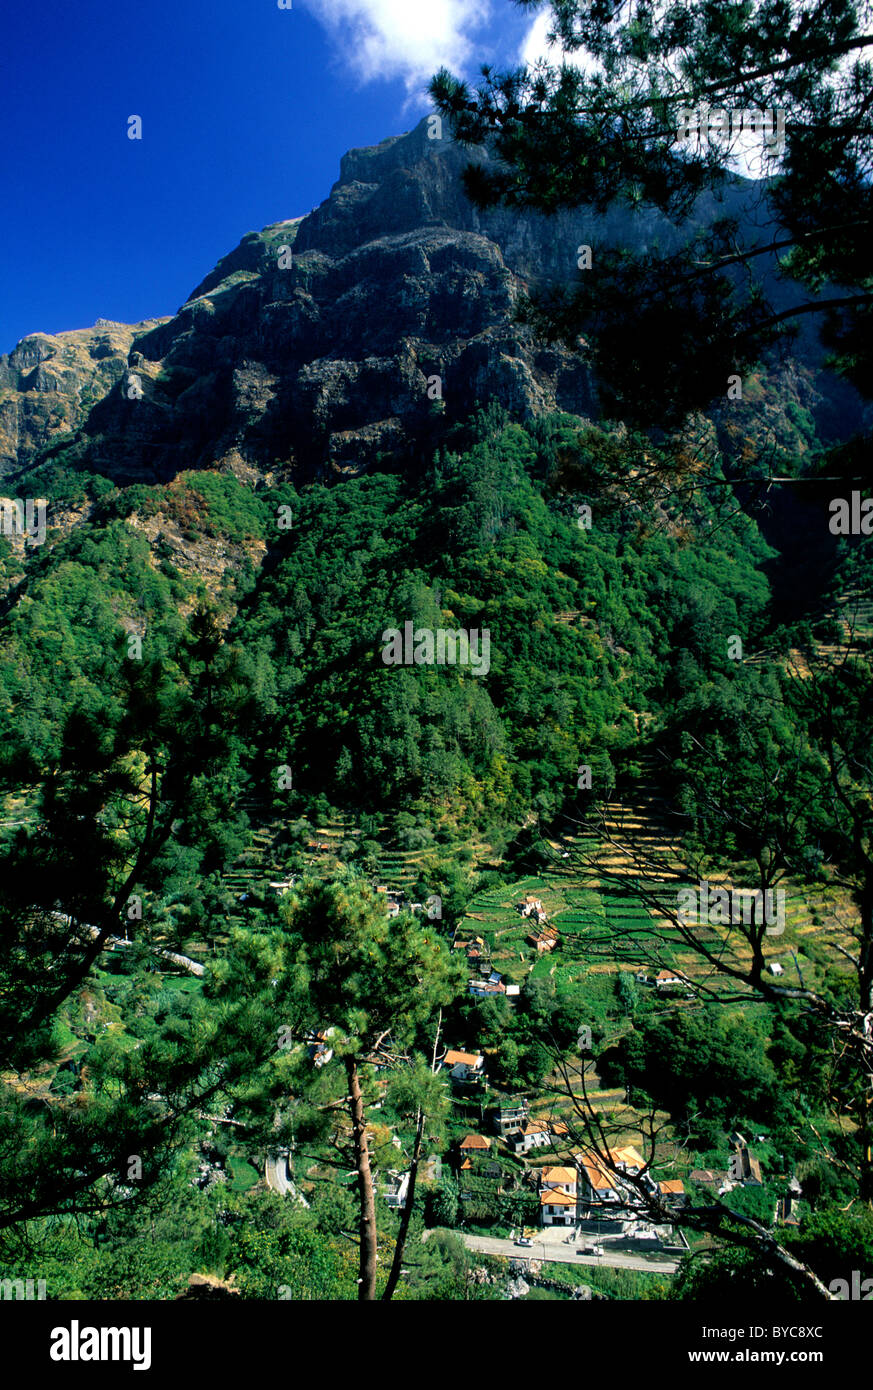 The rugged, mountainous and verdant interior of Madeira, a Portuguese island of volcanic origin situated in the - Stock Image